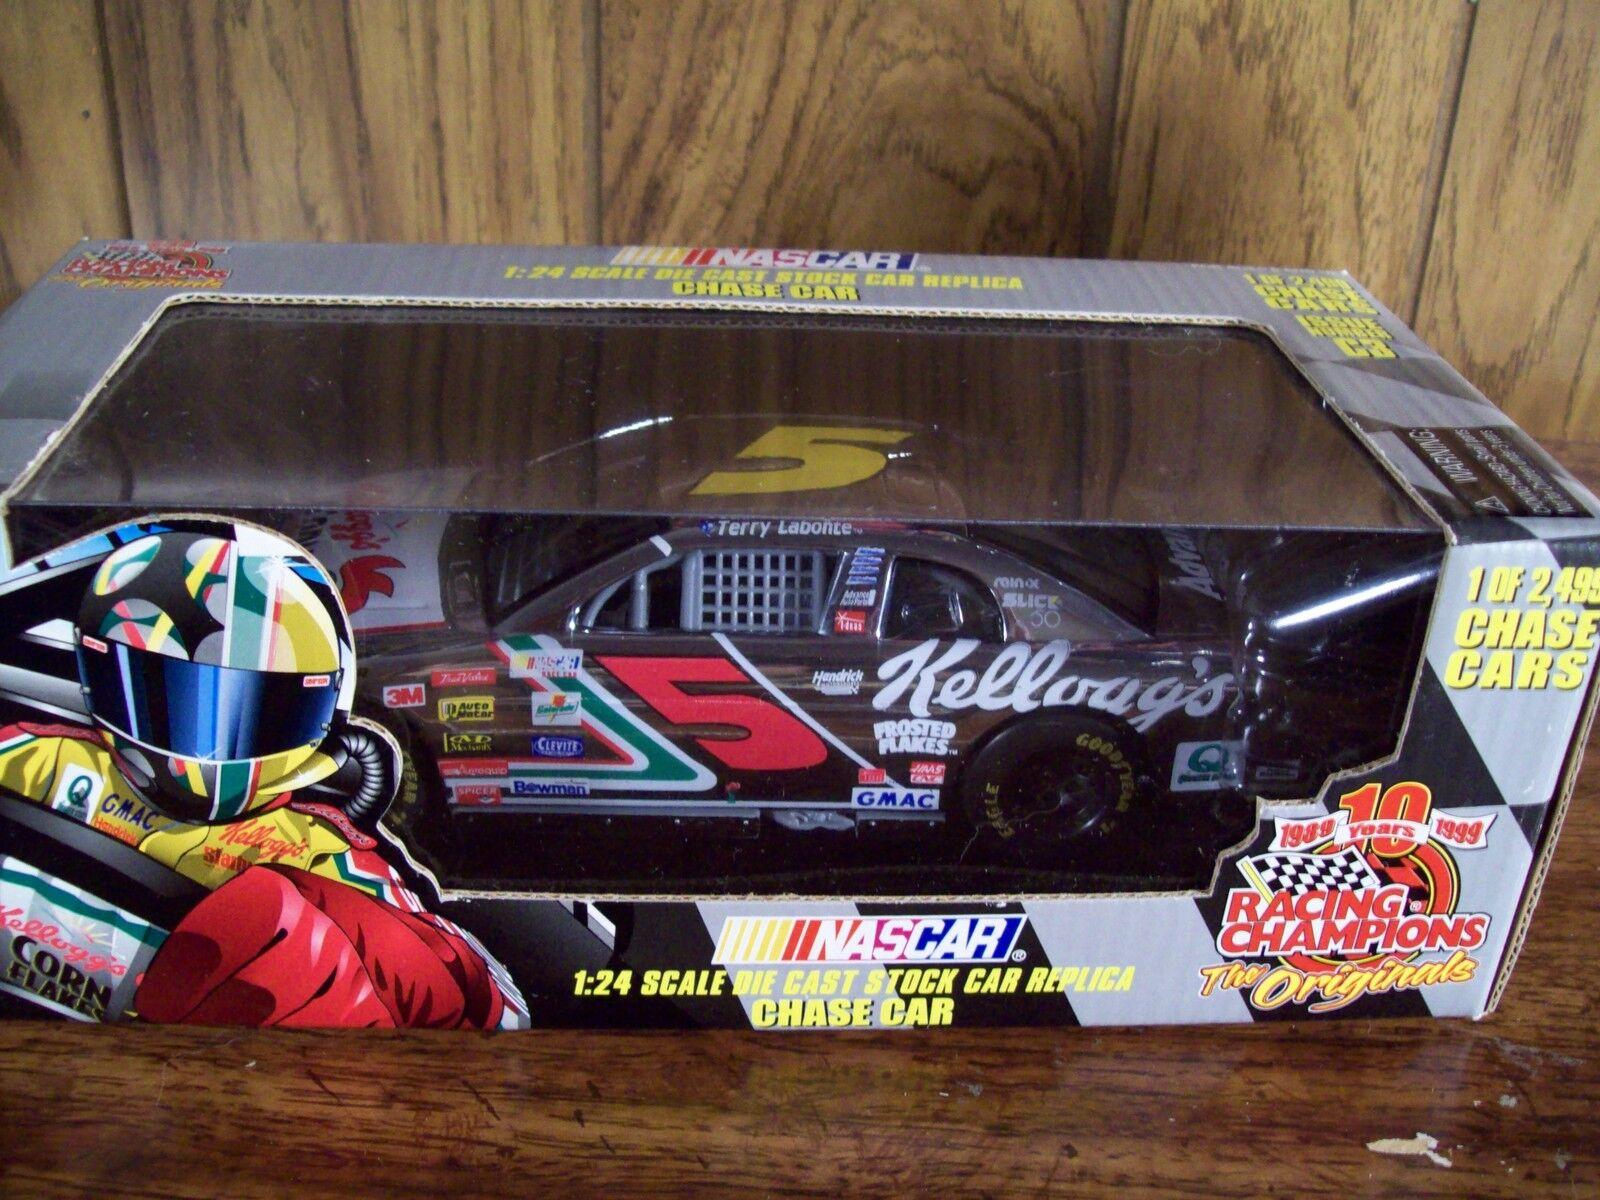 TERRY LABONTE KELLOGG'S CHASE 1 24 SCALE NASCAR CAR 1 of 2499  ISSUE C3